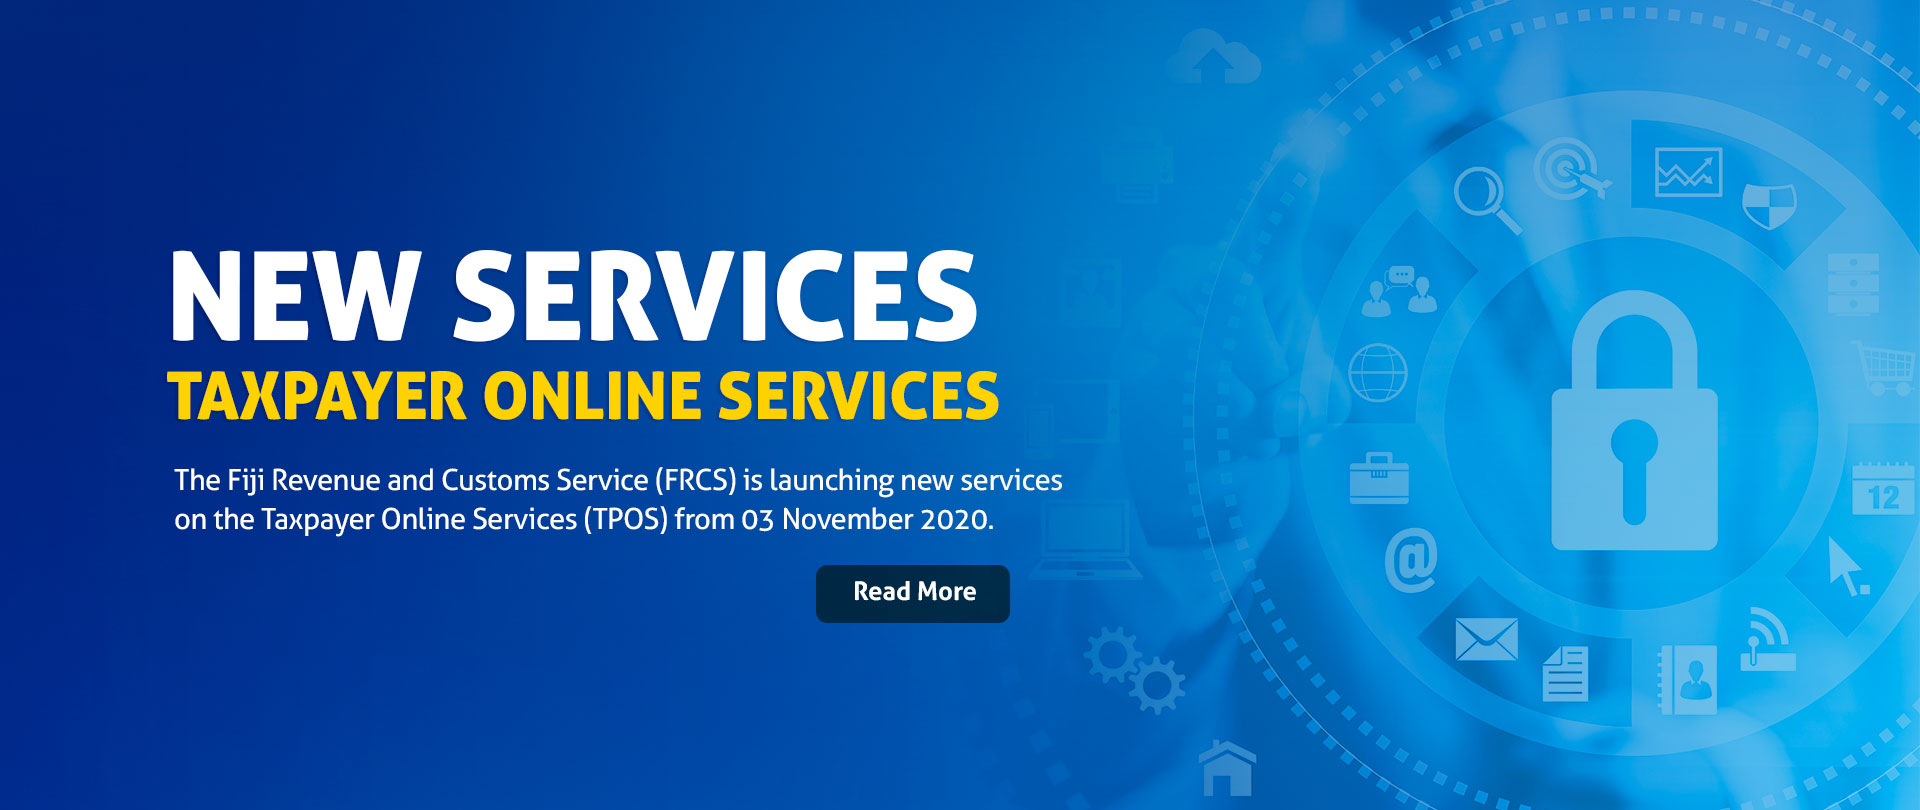 TPOS-Phase-1_New-Services1